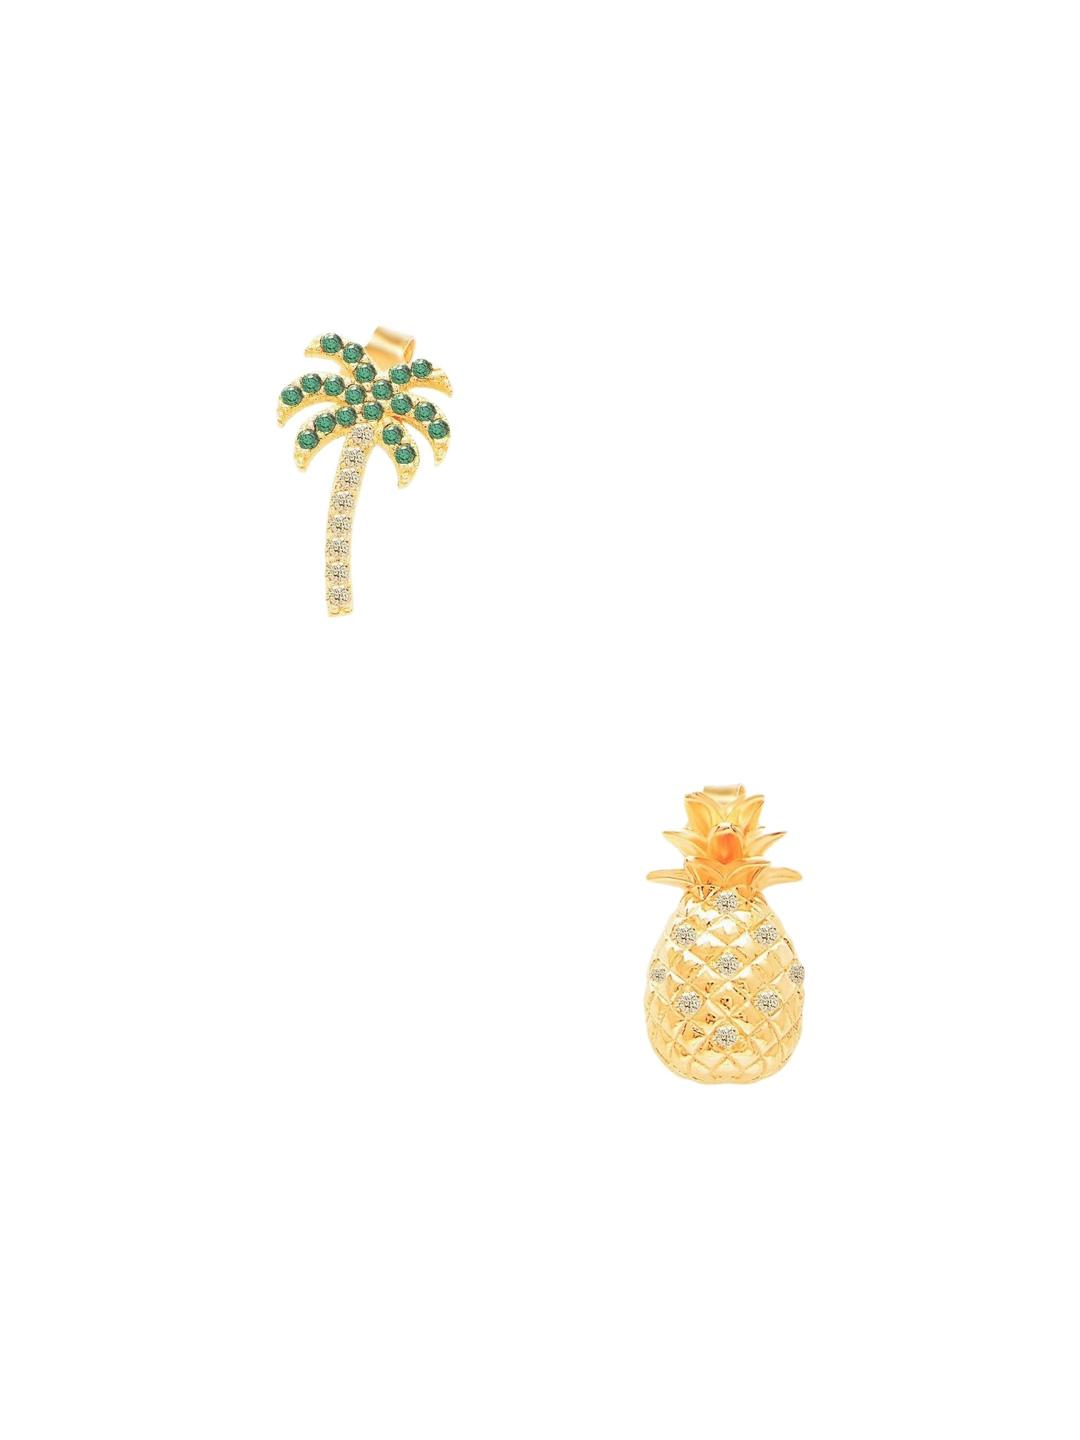 baali stud and beautiful jewelry buy earrings of kundan islamic online grams gold antique chand unique indian